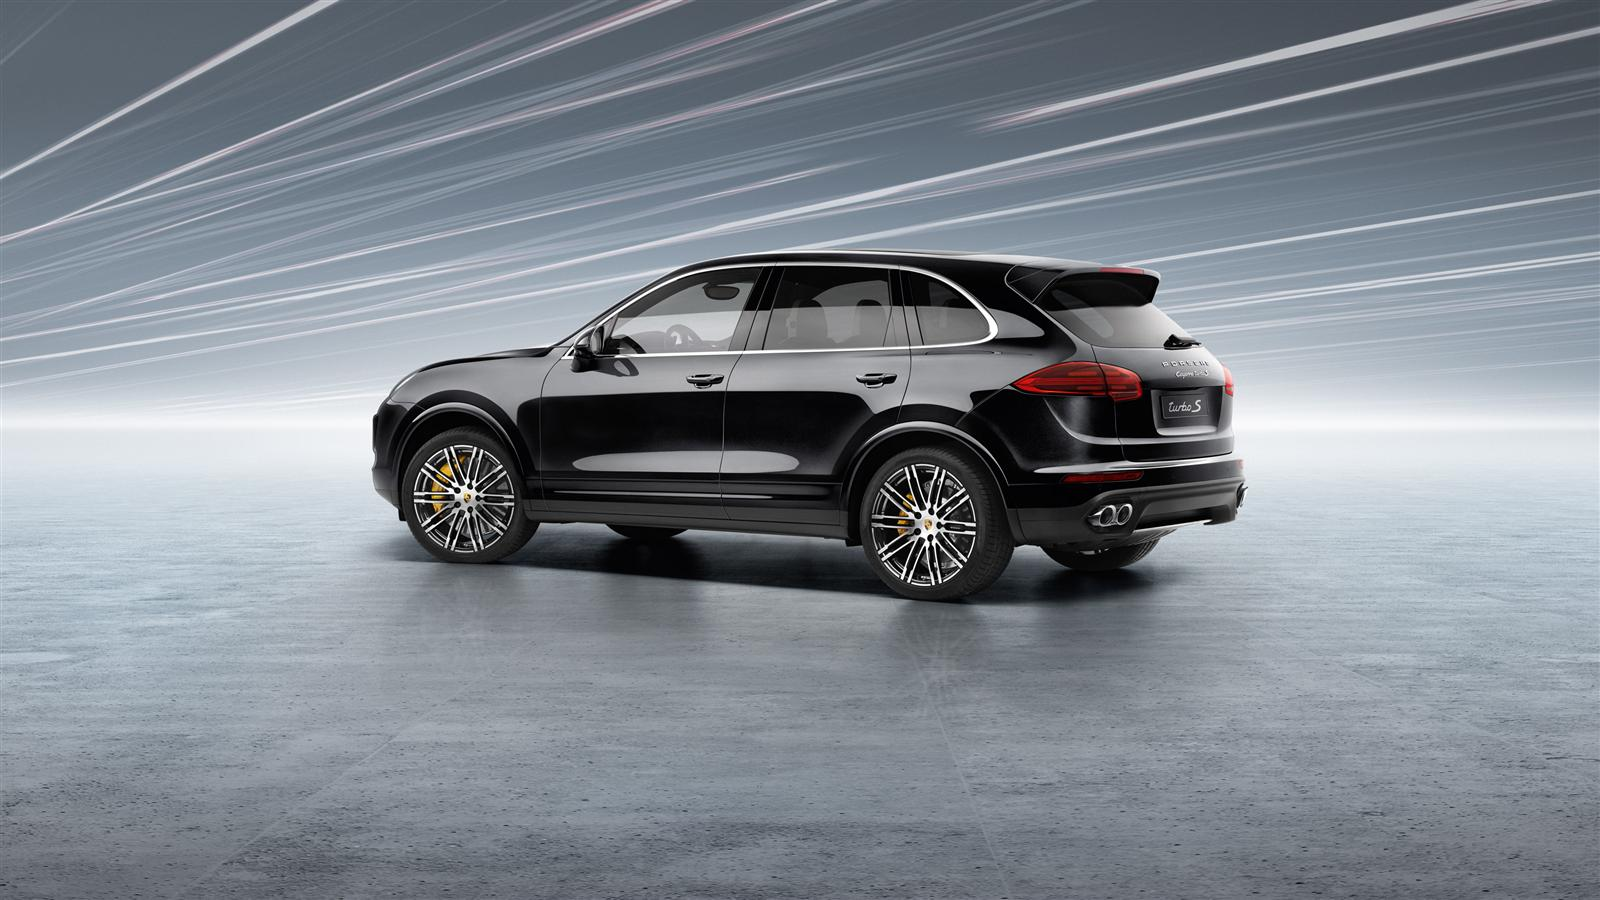 2016 porsche cayenne turbo s review top speed. Black Bedroom Furniture Sets. Home Design Ideas